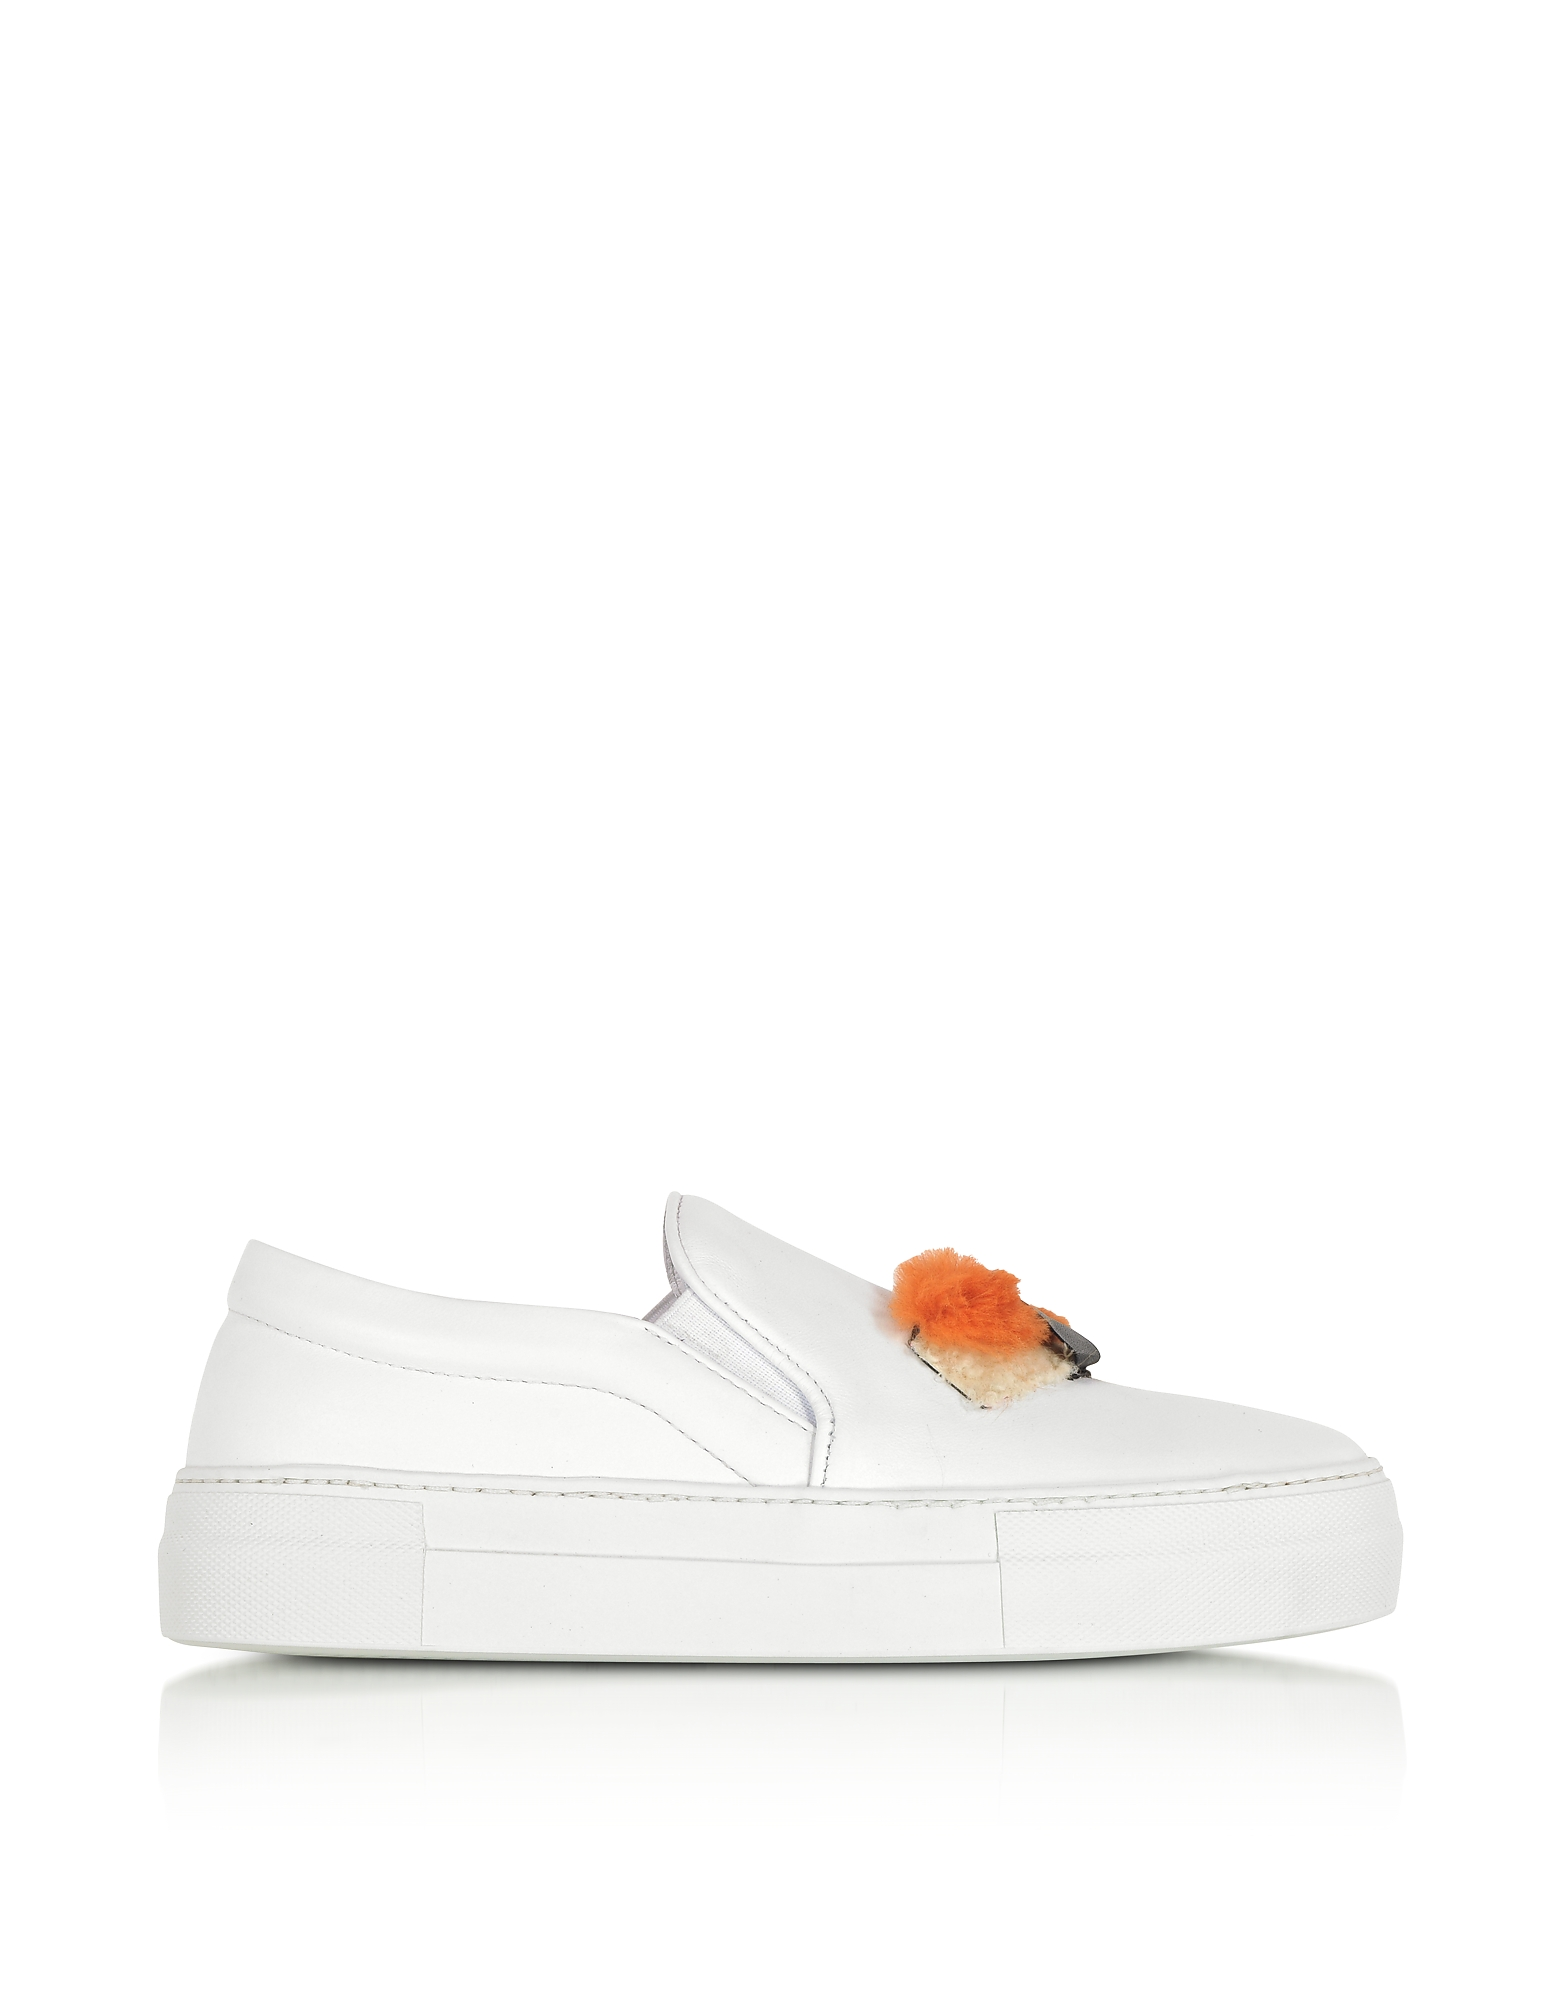 Joshua Sanders Shoes, Sushi White Leather Slip On Women's Sneakers